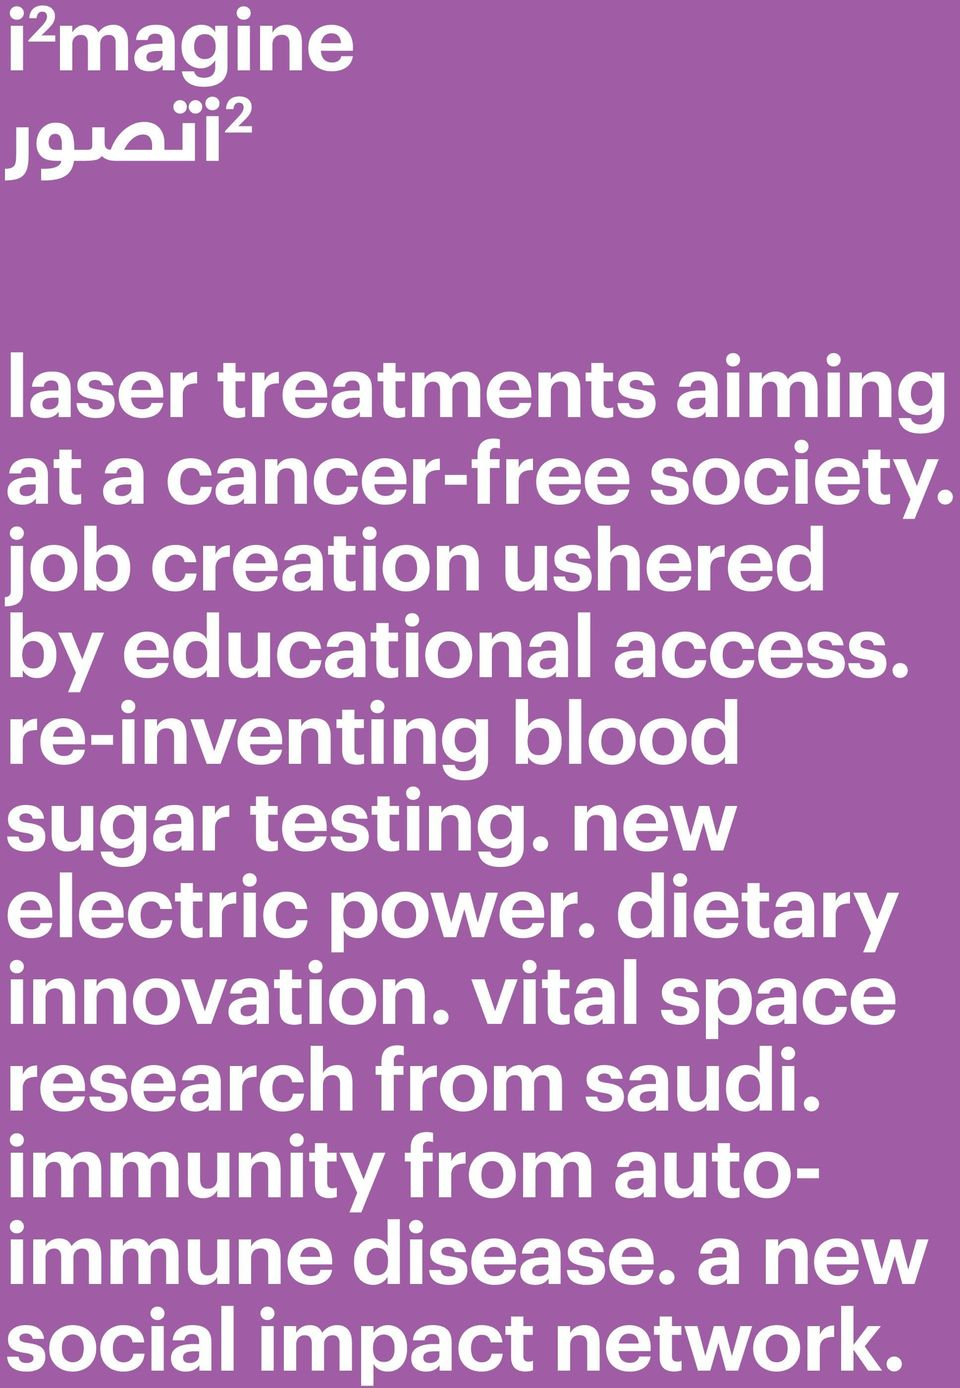 new electric power. dietary innovation. vital space research from saudi.